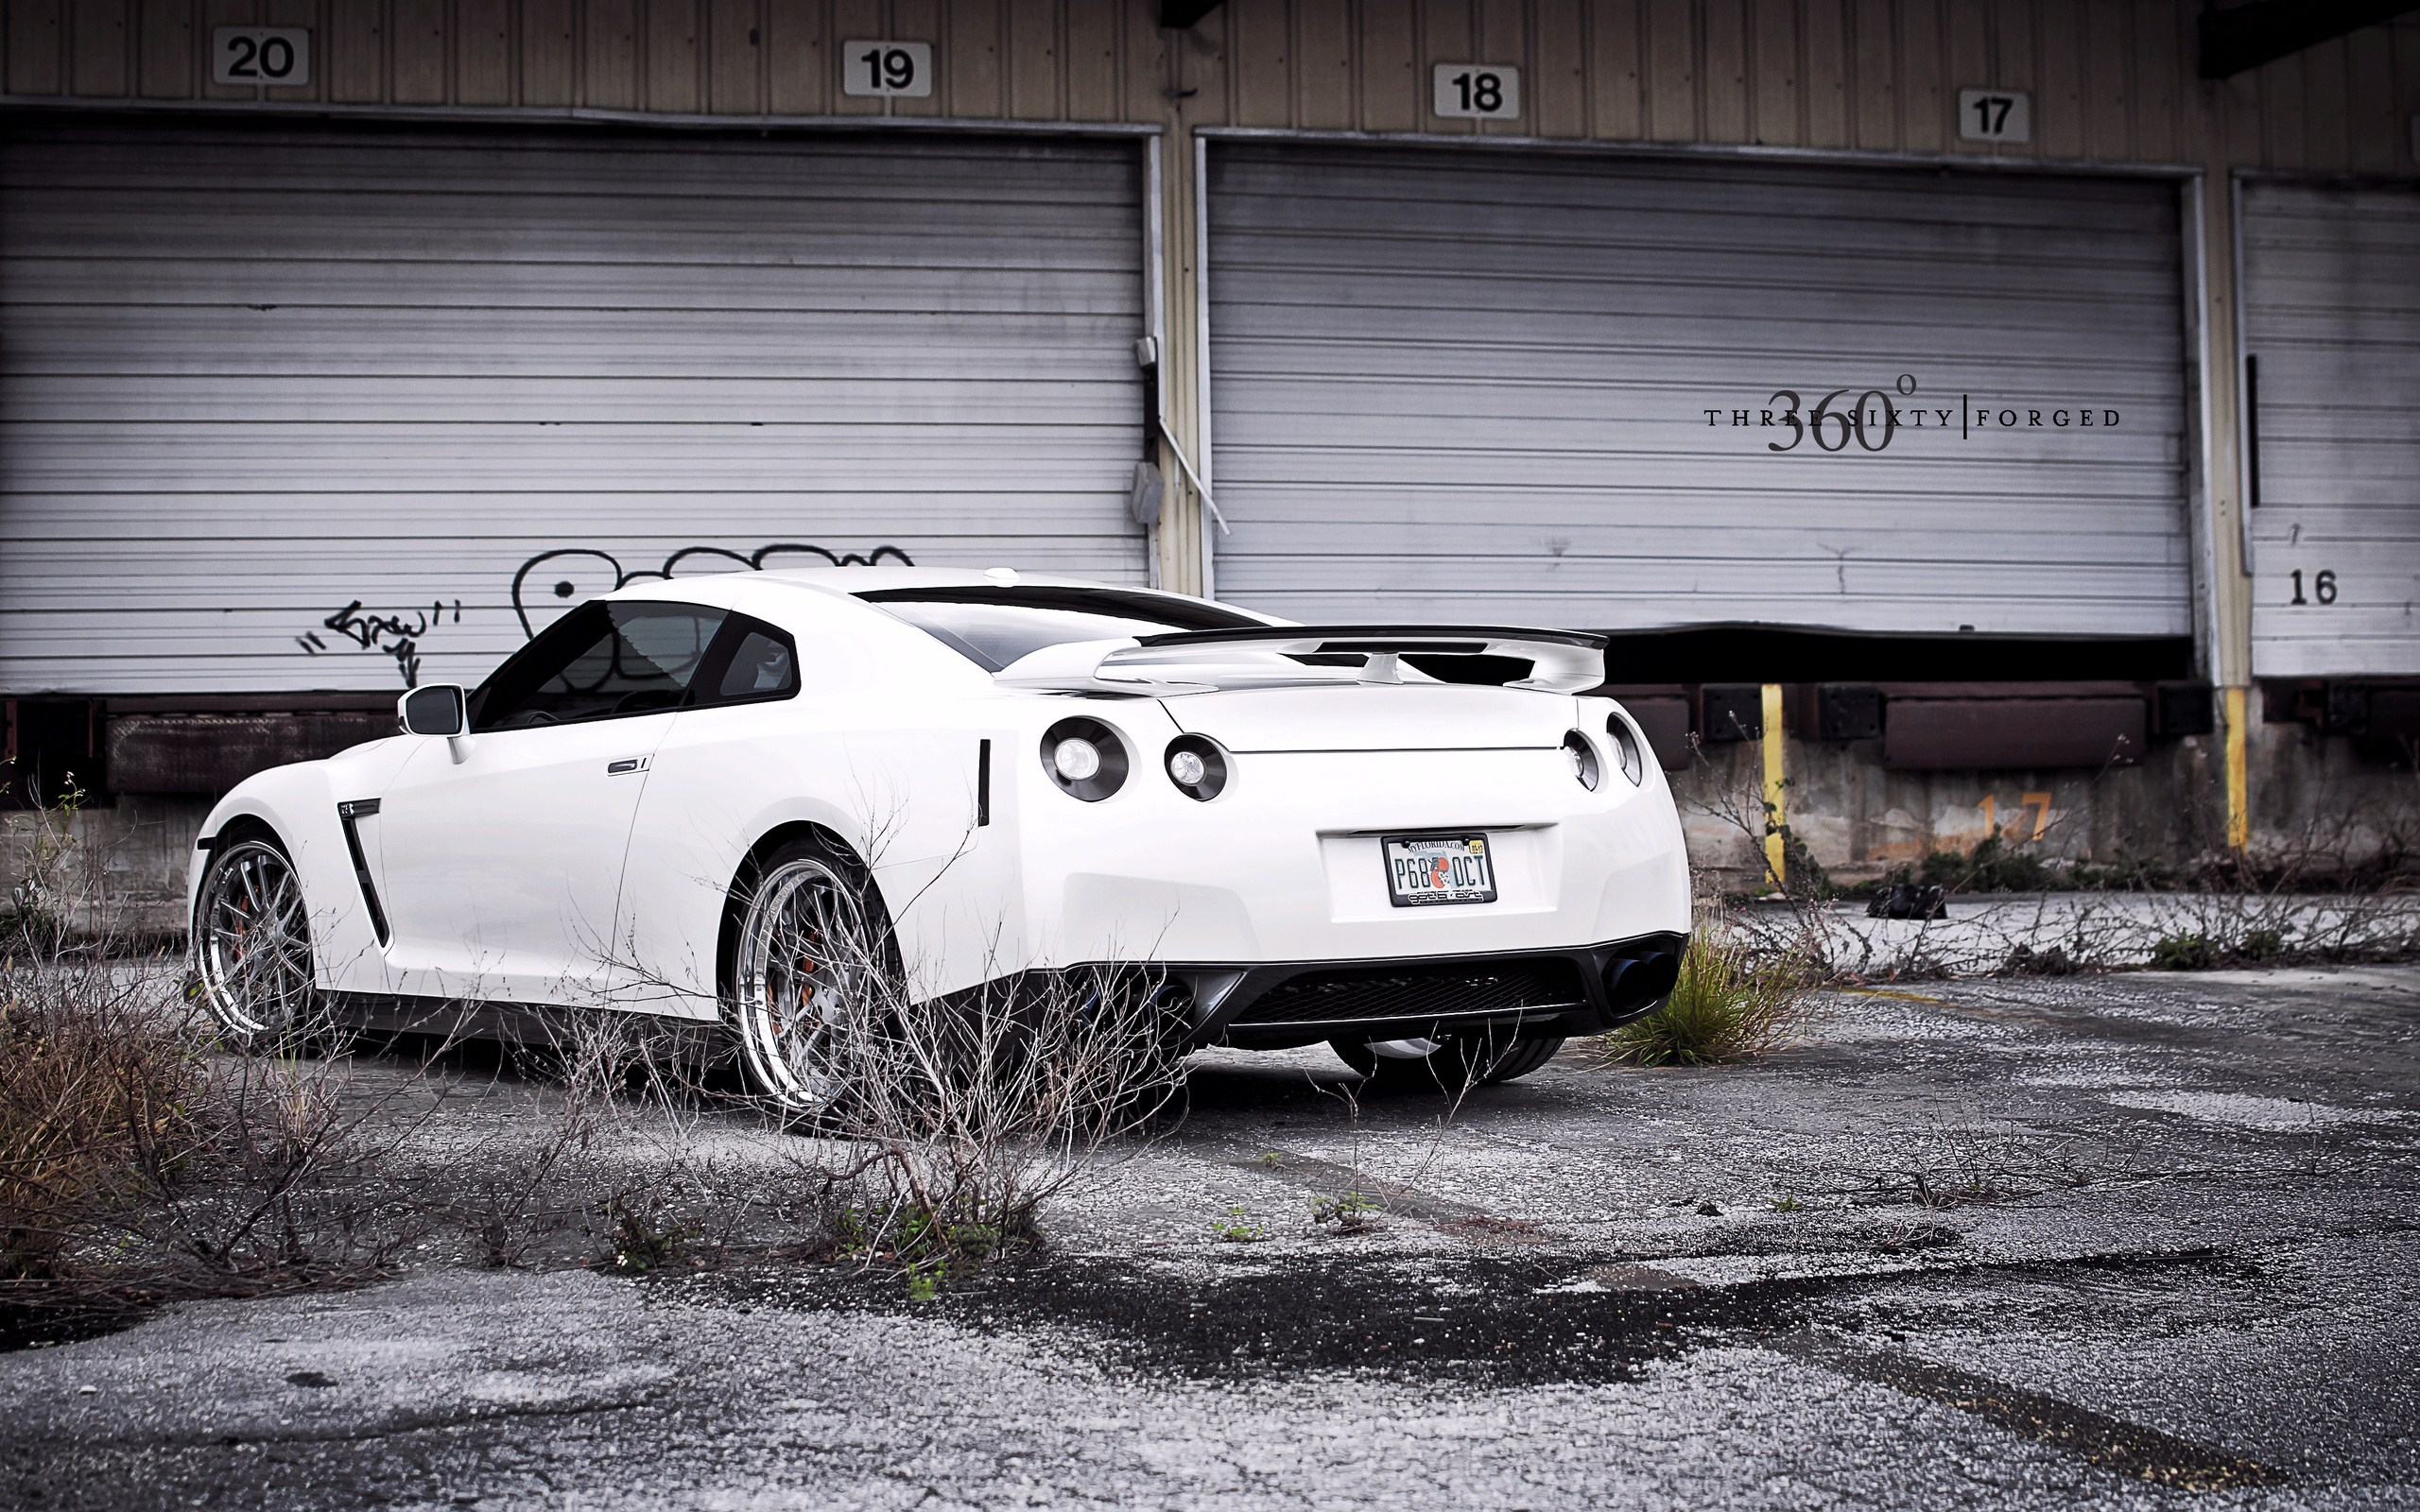 Back Nissan GT-R R35 on 360 Forged Wheels HD Wallpaper is a awesome hd photography. Free to upload, share the high definition photos.